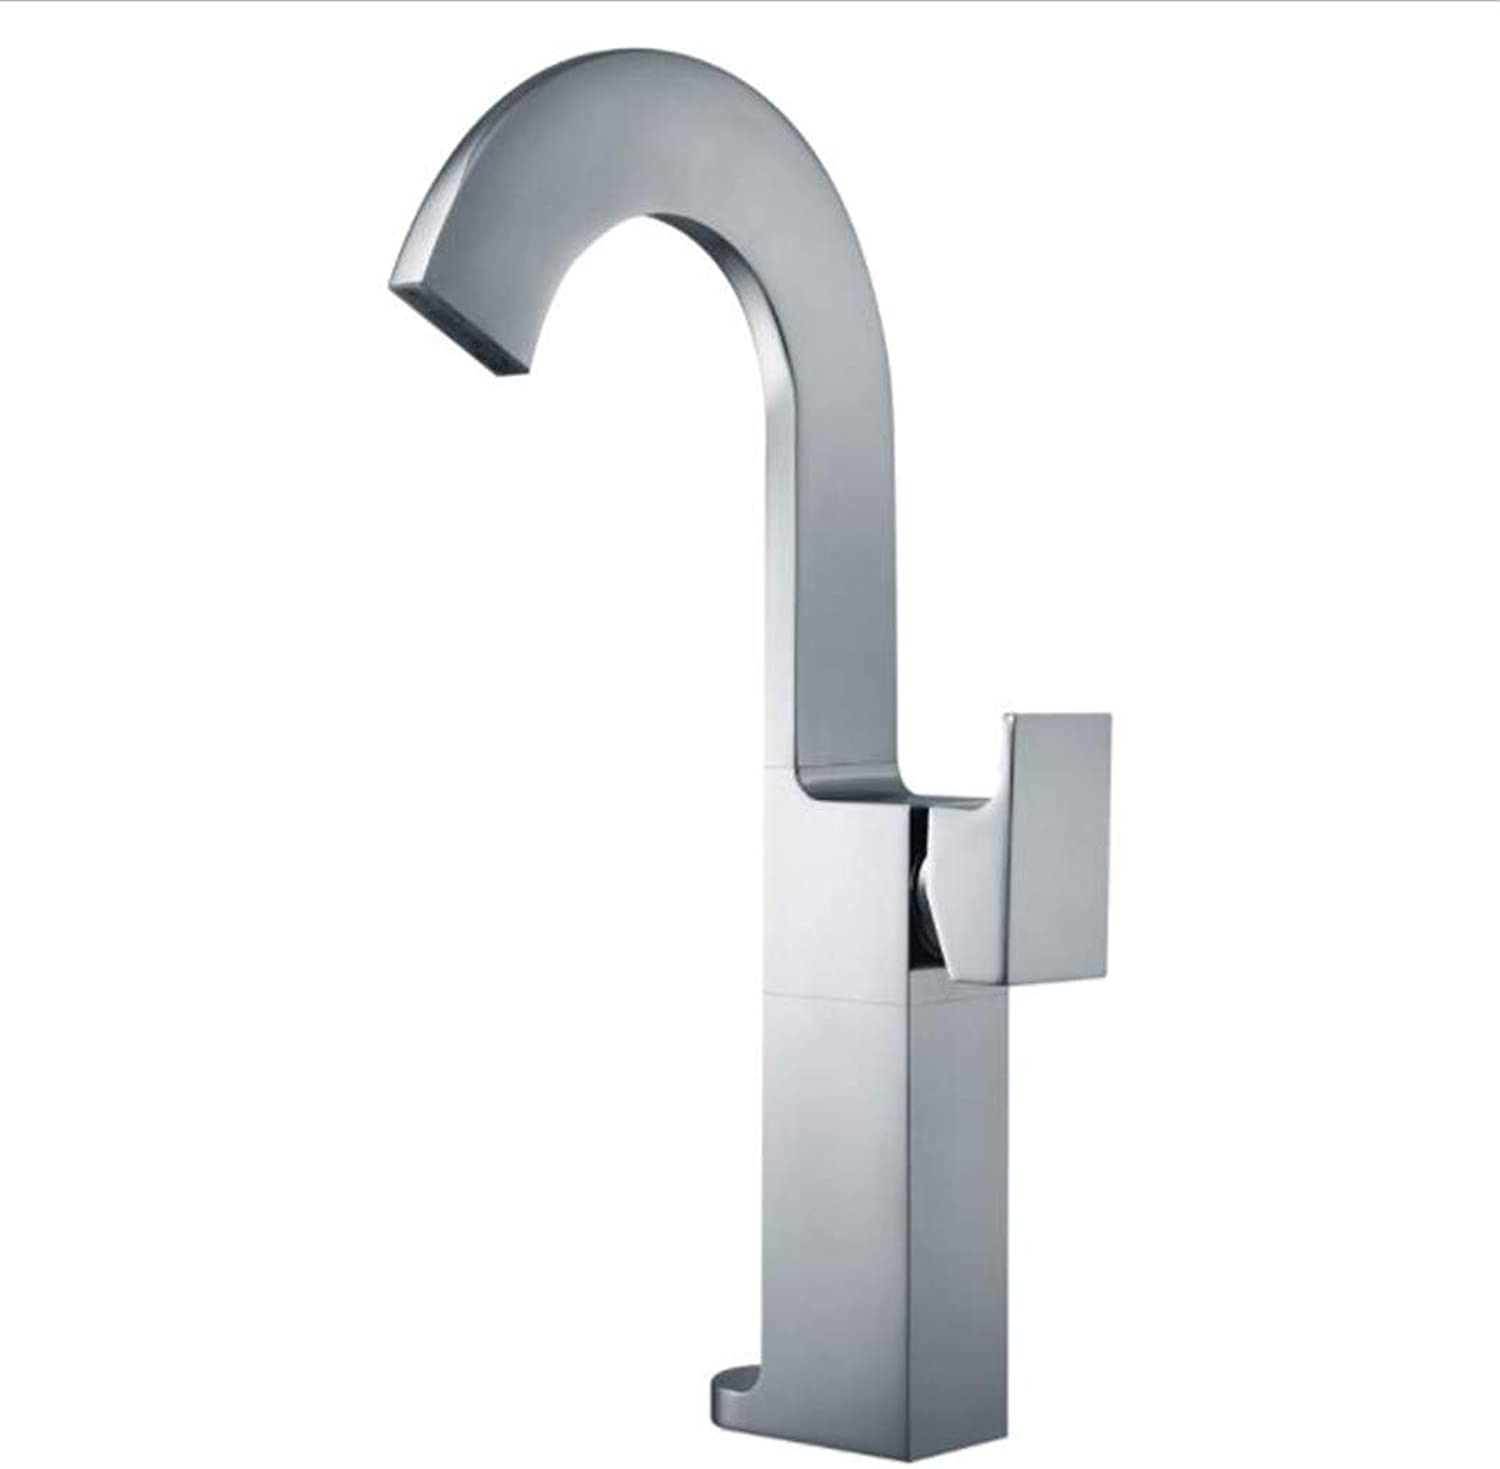 Taps Mixer?Swivel?Faucet Sink Copper Cold and Hot Raised Basin Wash Dish Faucet Platform Basin Waterfall Type